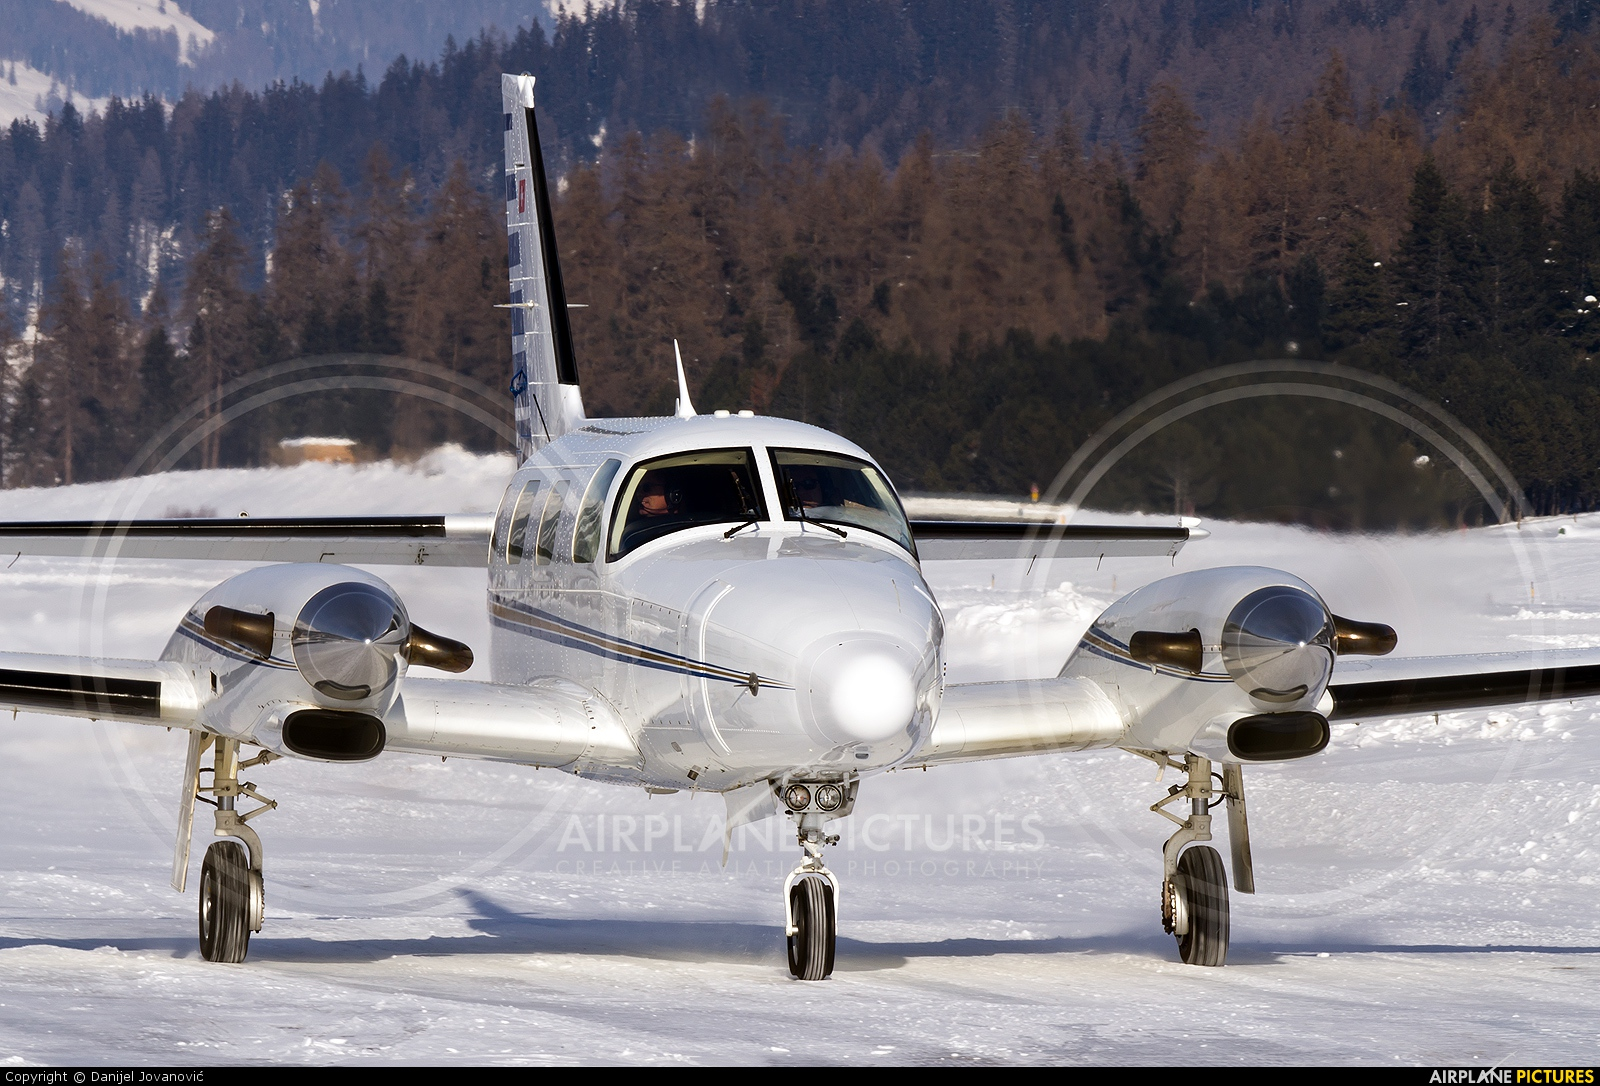 Swiss Private Flights HB-LUQ aircraft at Samedan - Engadin